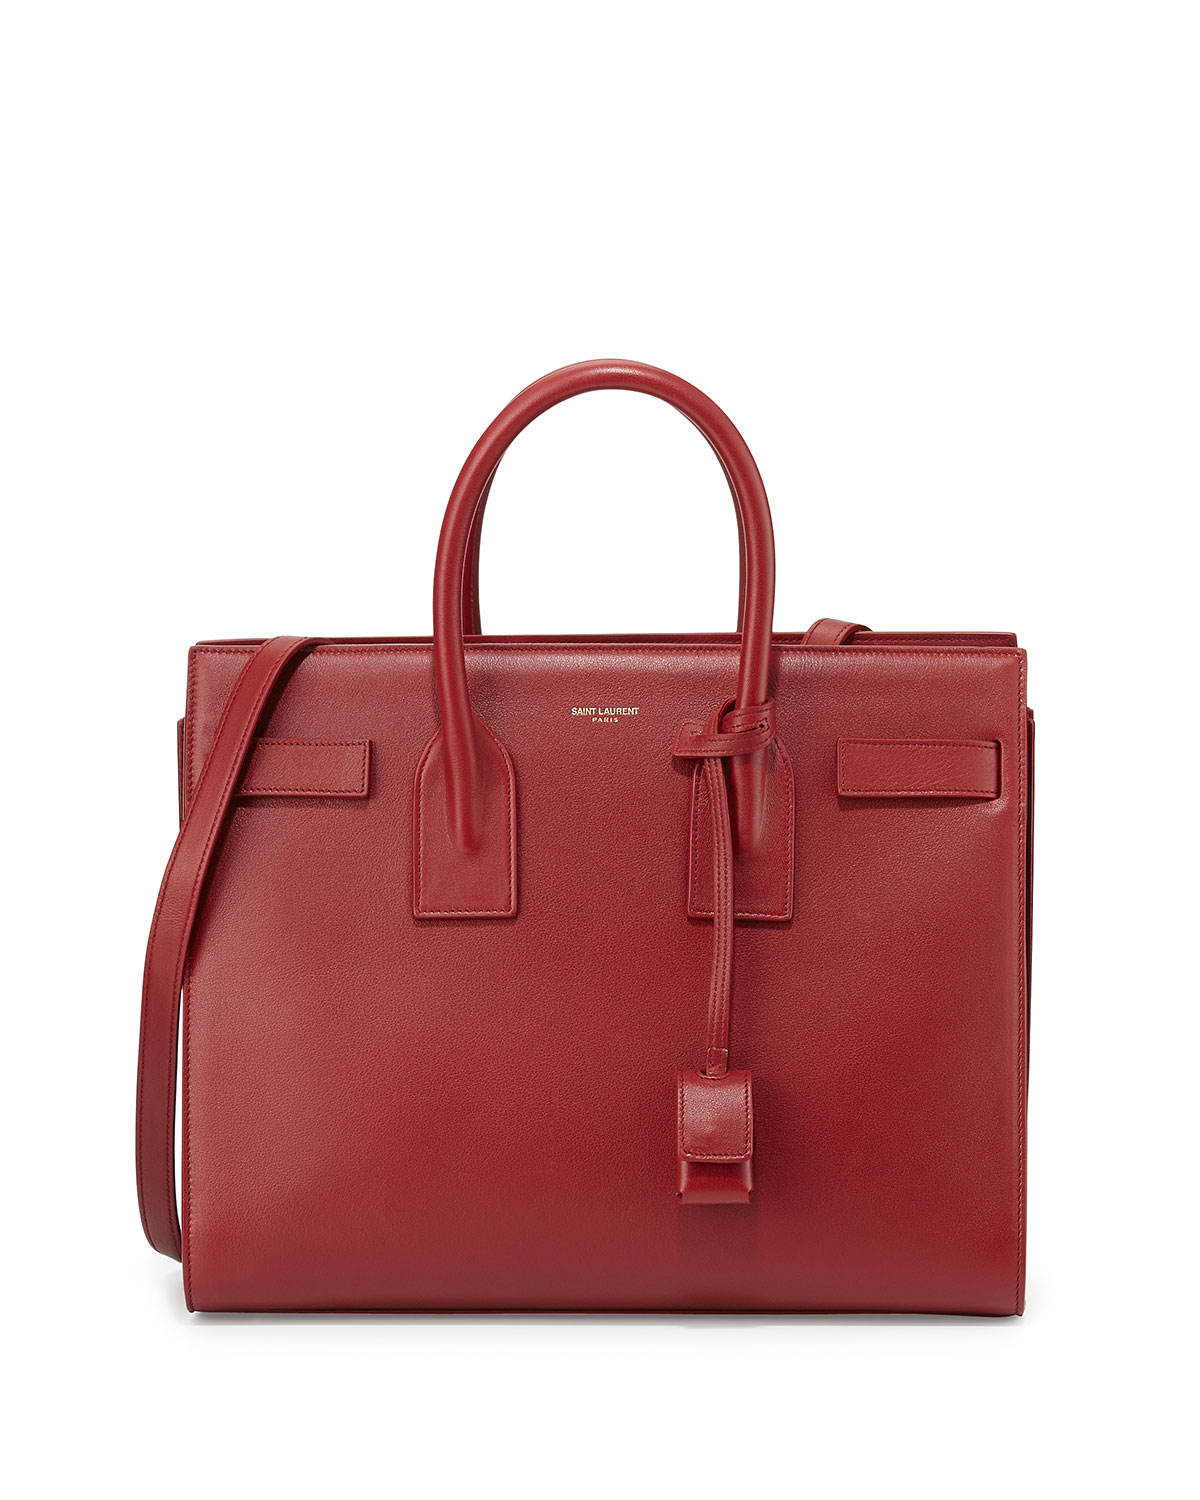 lyst saint laurent sac de jour small grain leather tote bag in red. Black Bedroom Furniture Sets. Home Design Ideas